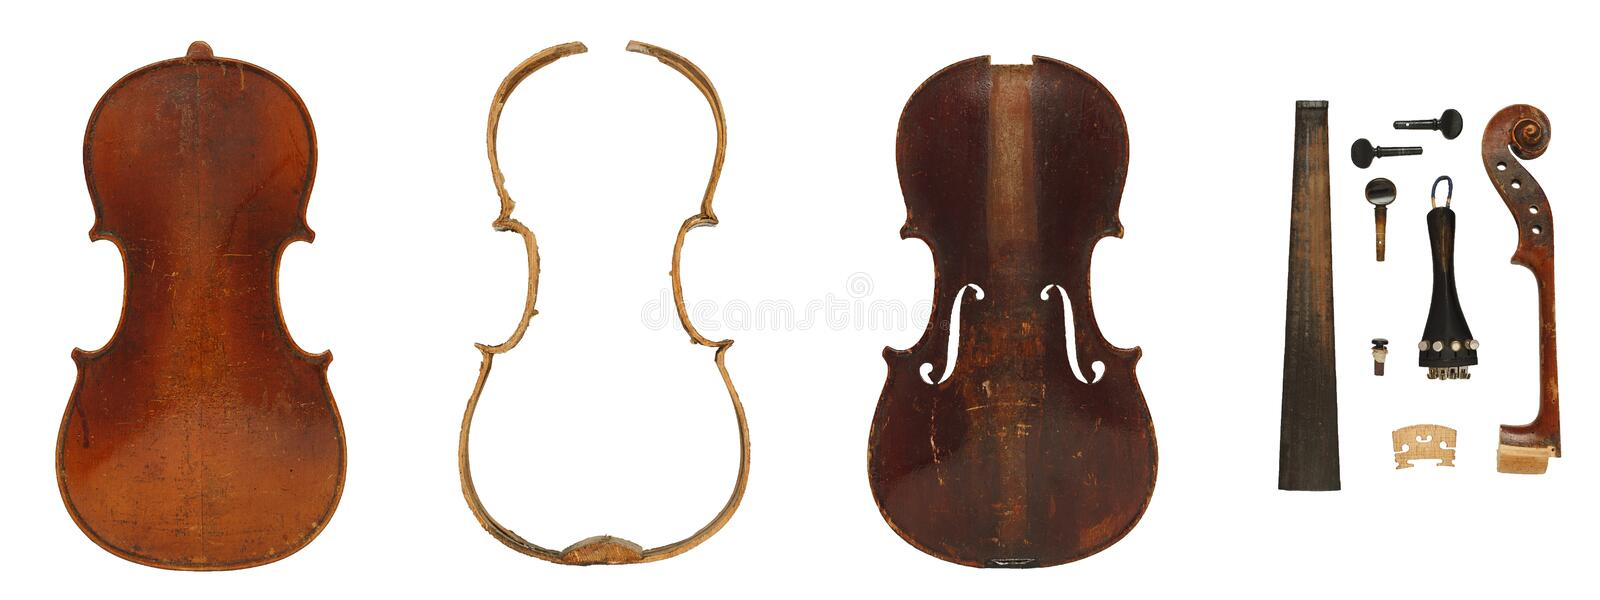 Antique violin parts full set royalty free stock image